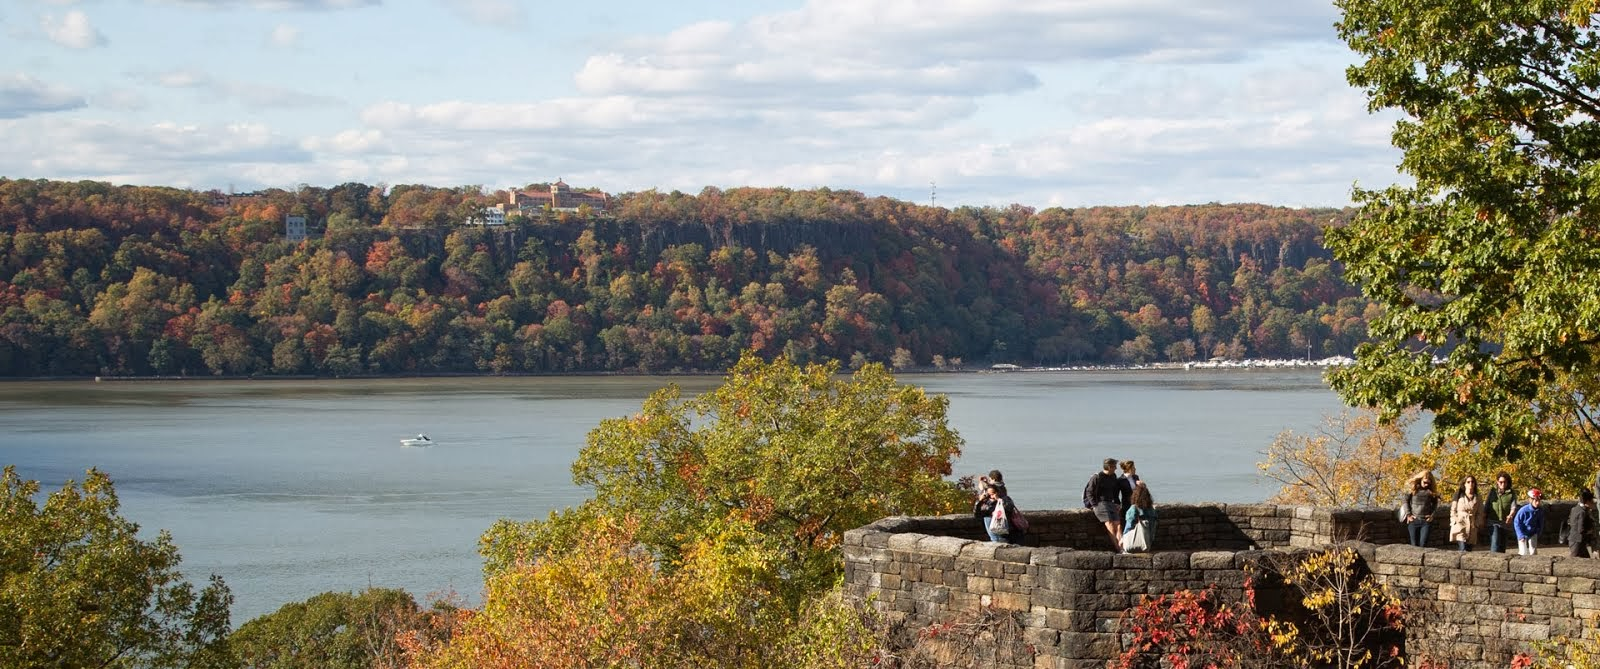 The Cloisters and Fort Tryon Park